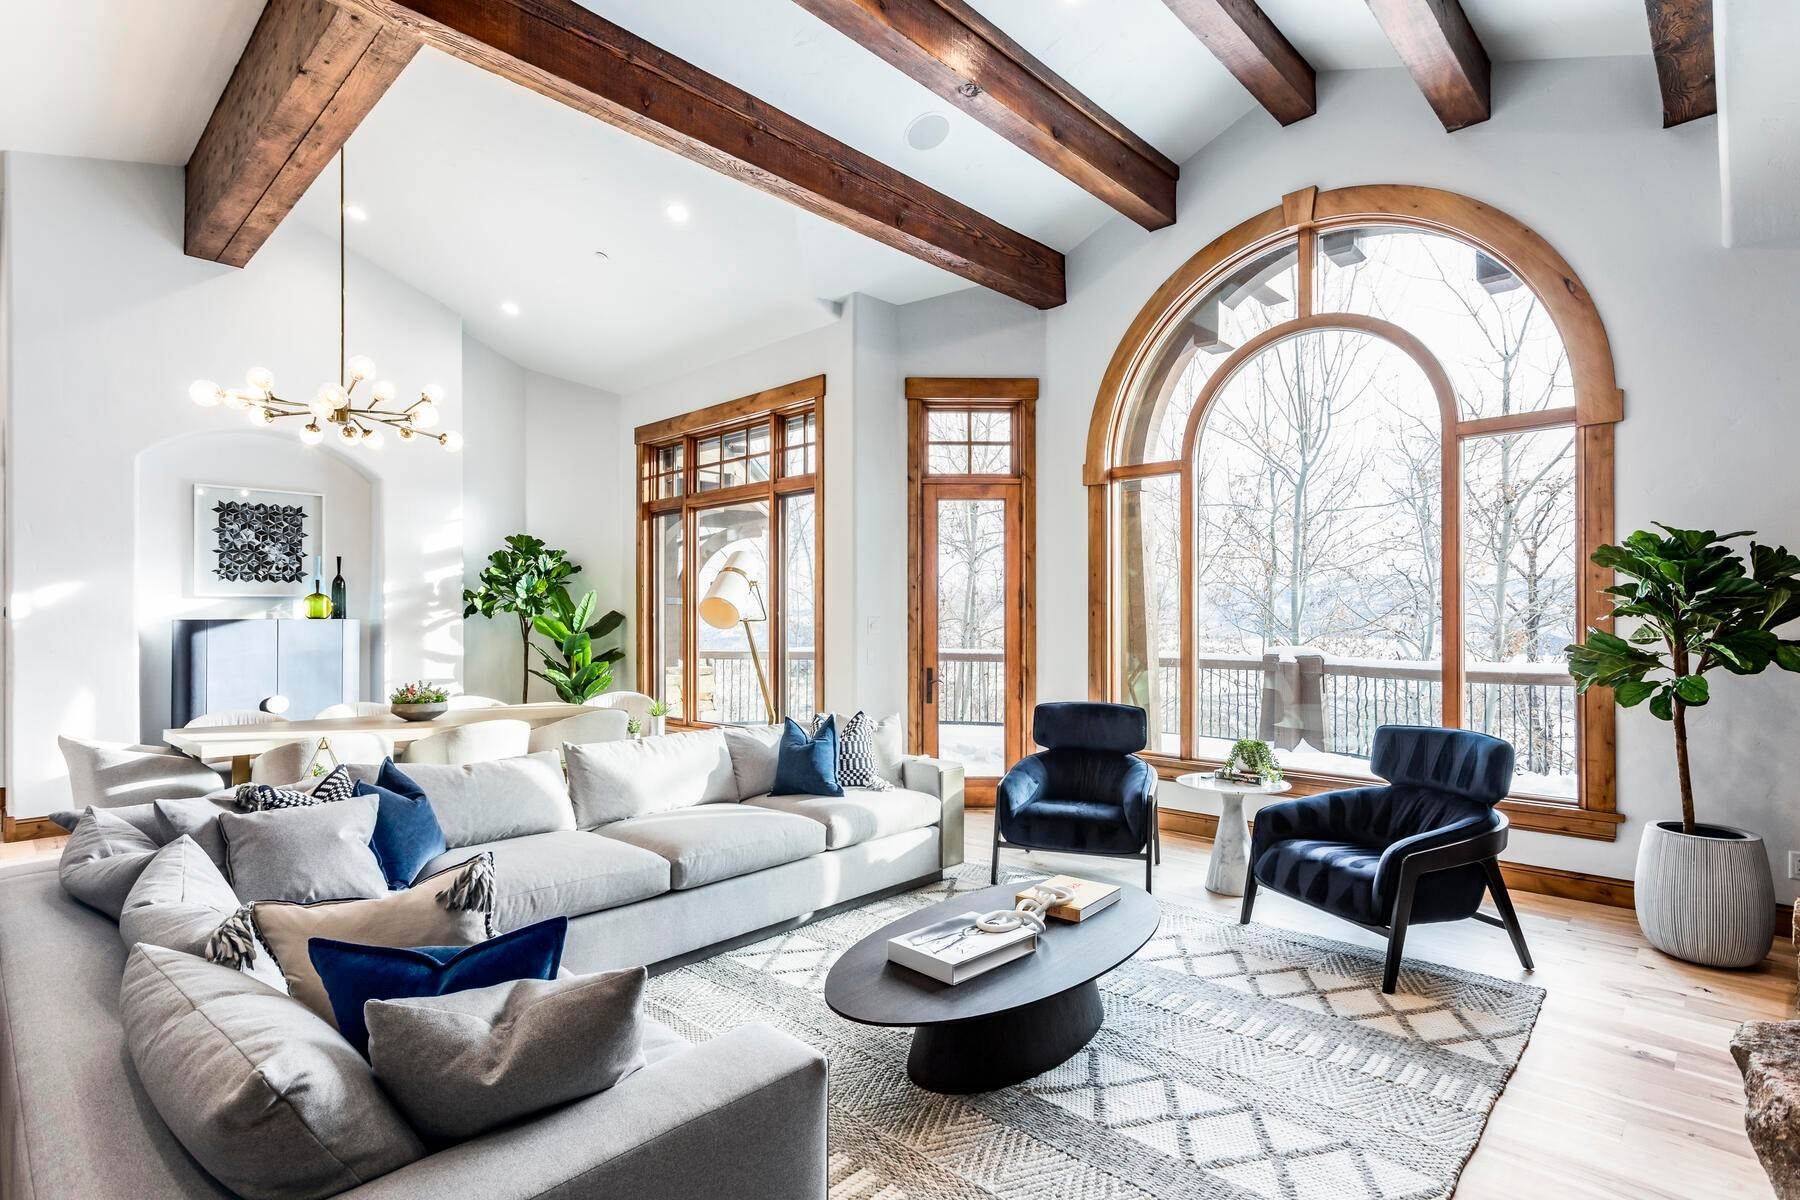 5. Single Family Homes for Sale at Sophisticated Masterpiece in Promontory 8340 N Promontory Ranch Rd Park City, Utah 84098 United States